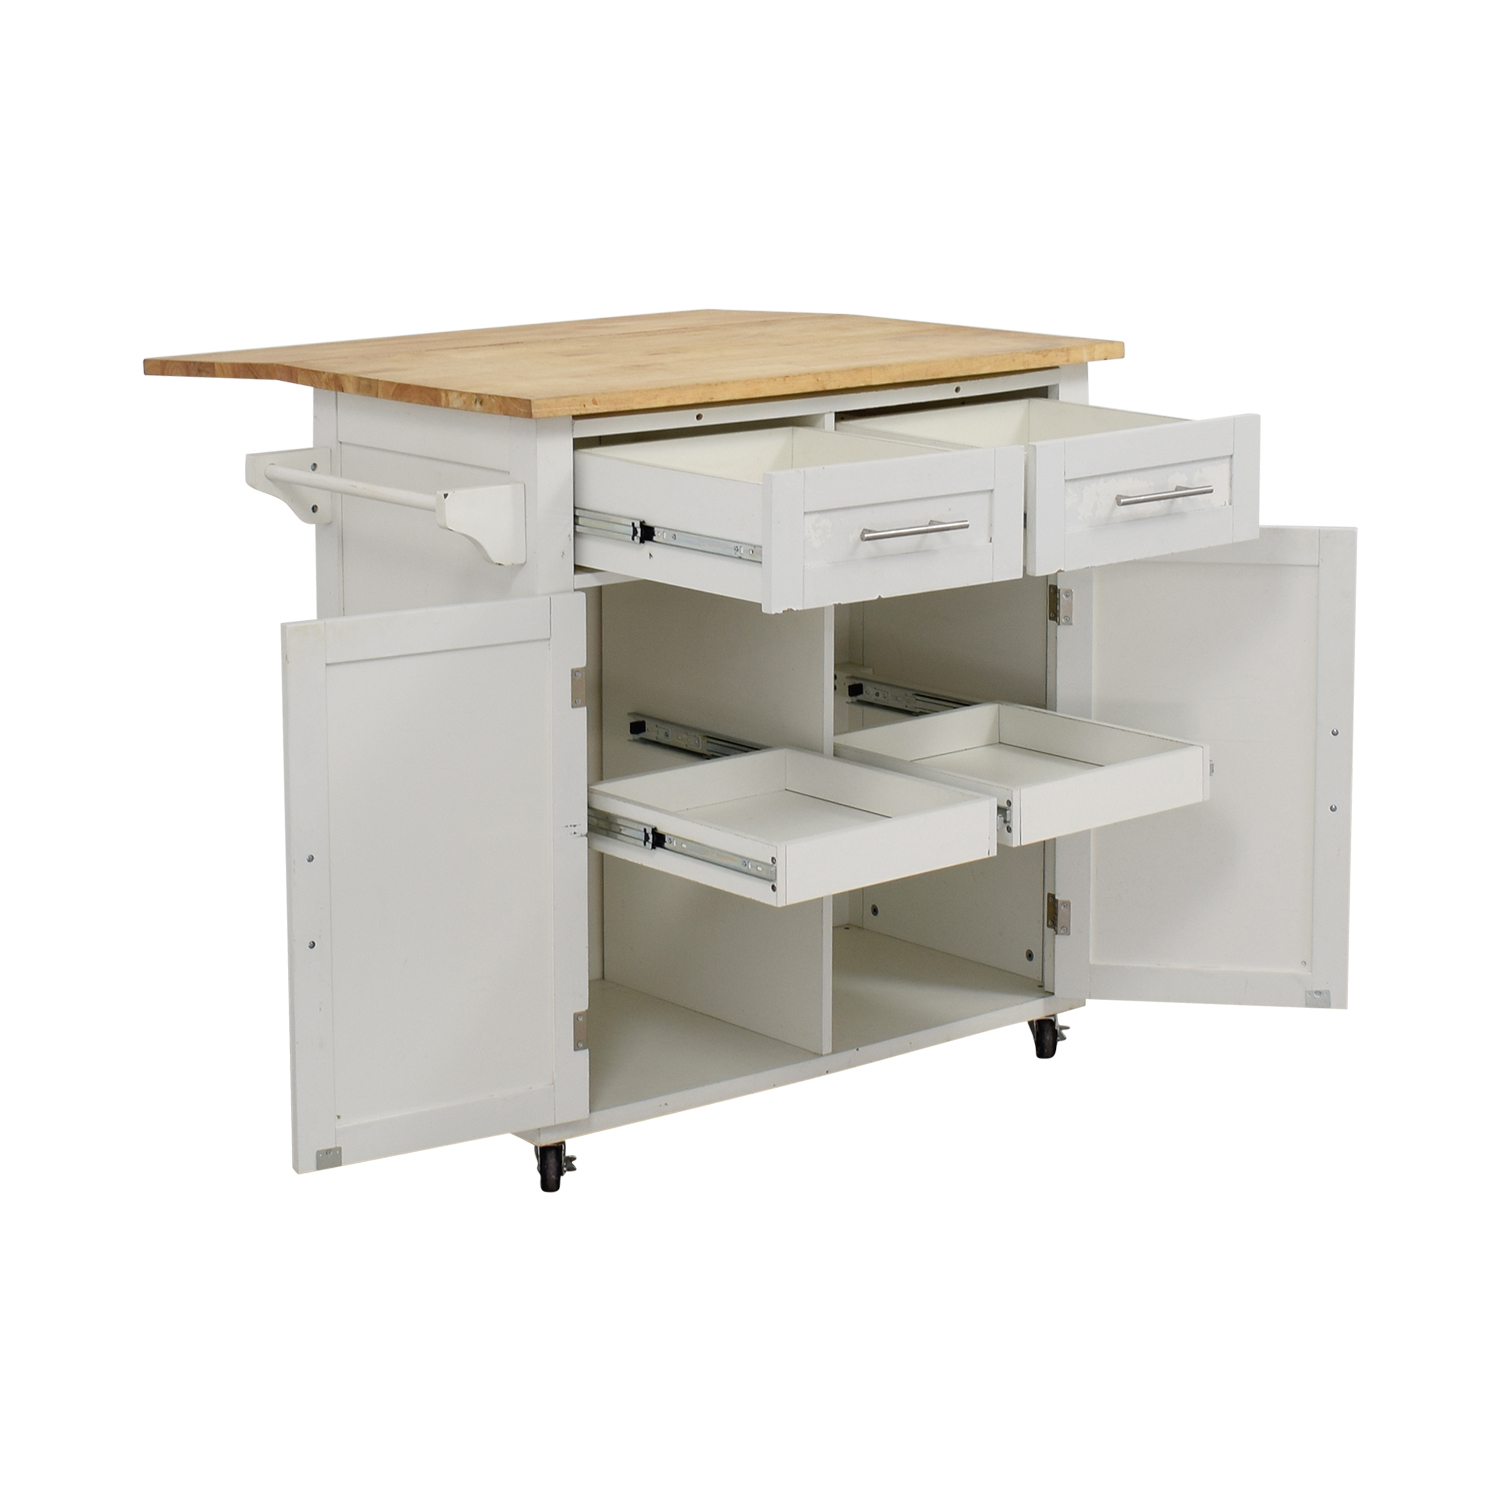 Target Kitchen Tables: Target Target White Kitchen Island / Tables